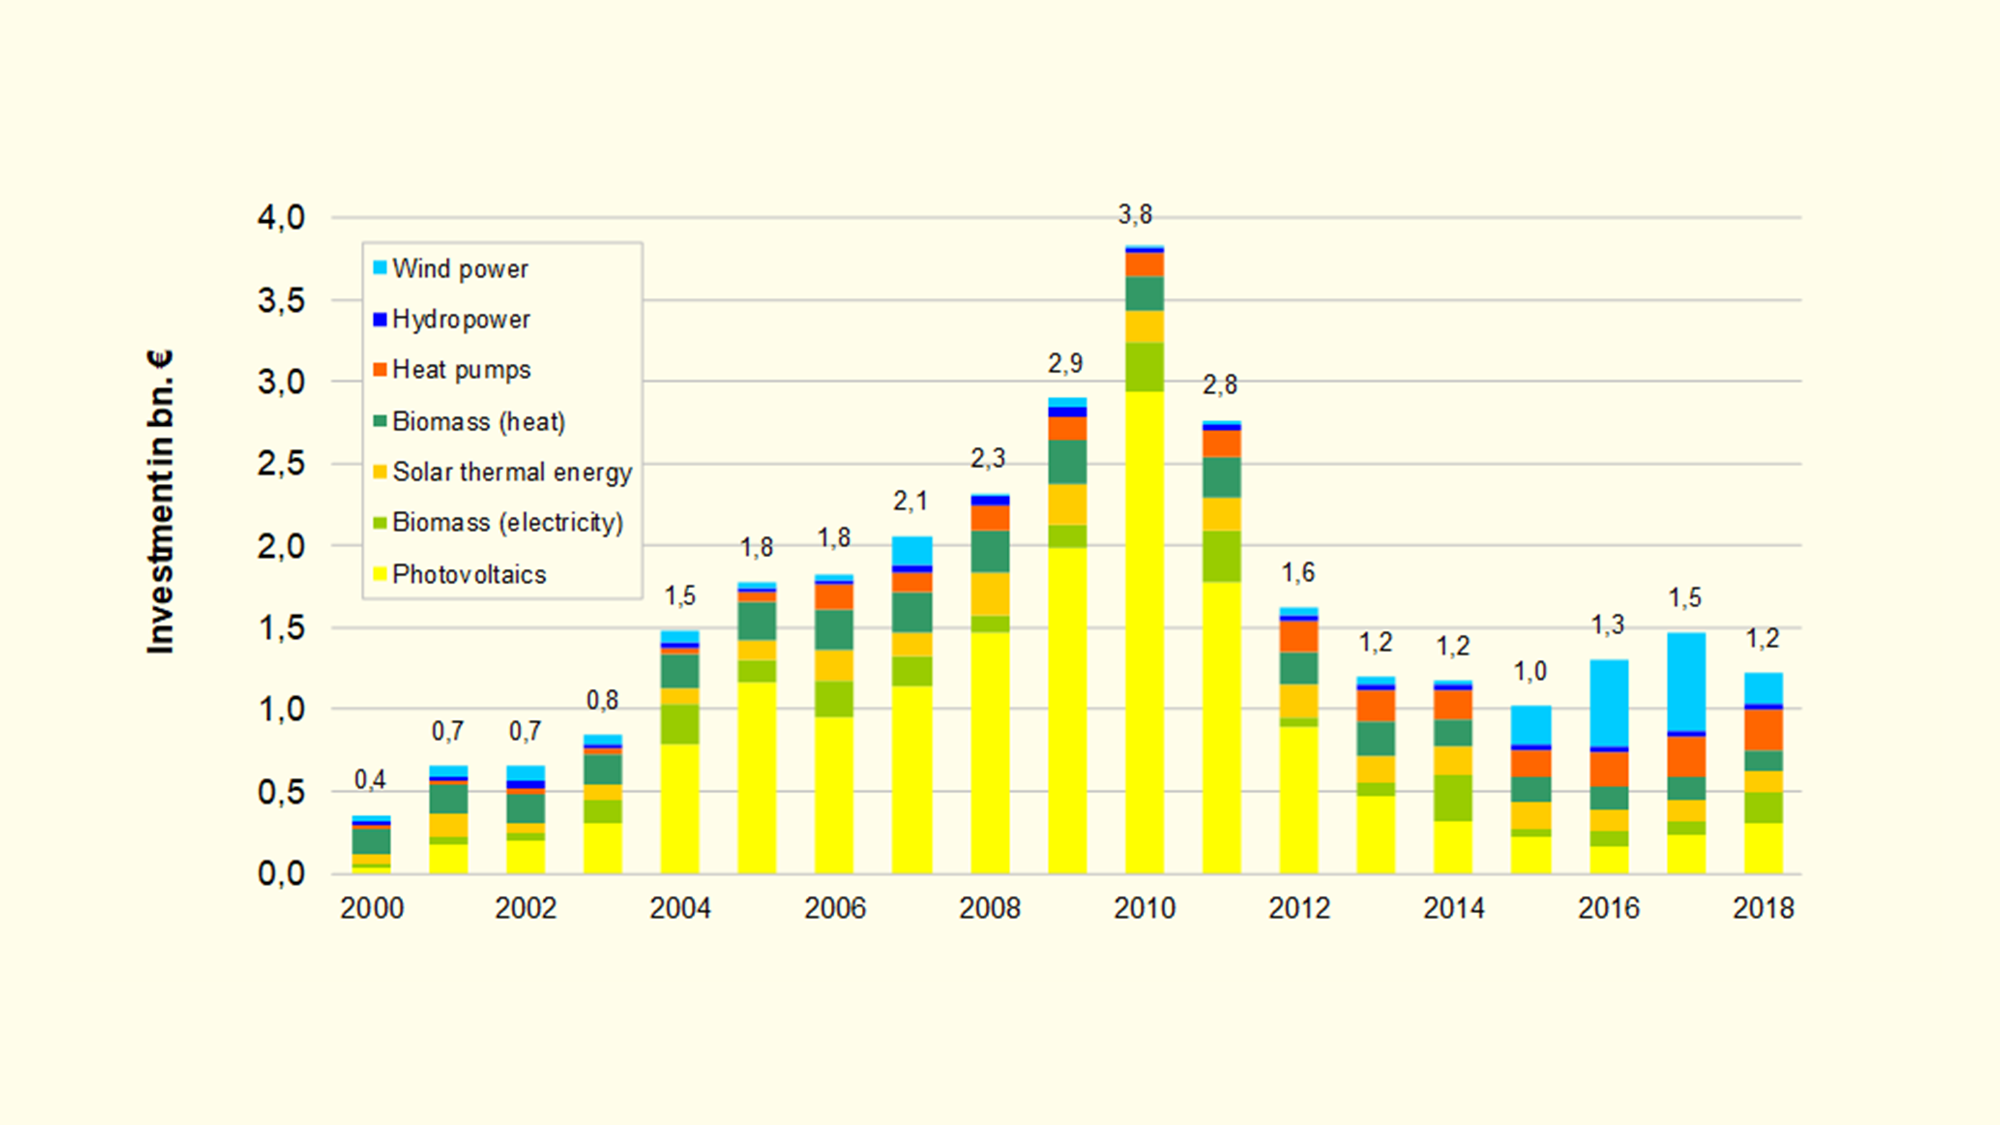 Graph of the investments in renewable energies in the years between 2000 and 2018.